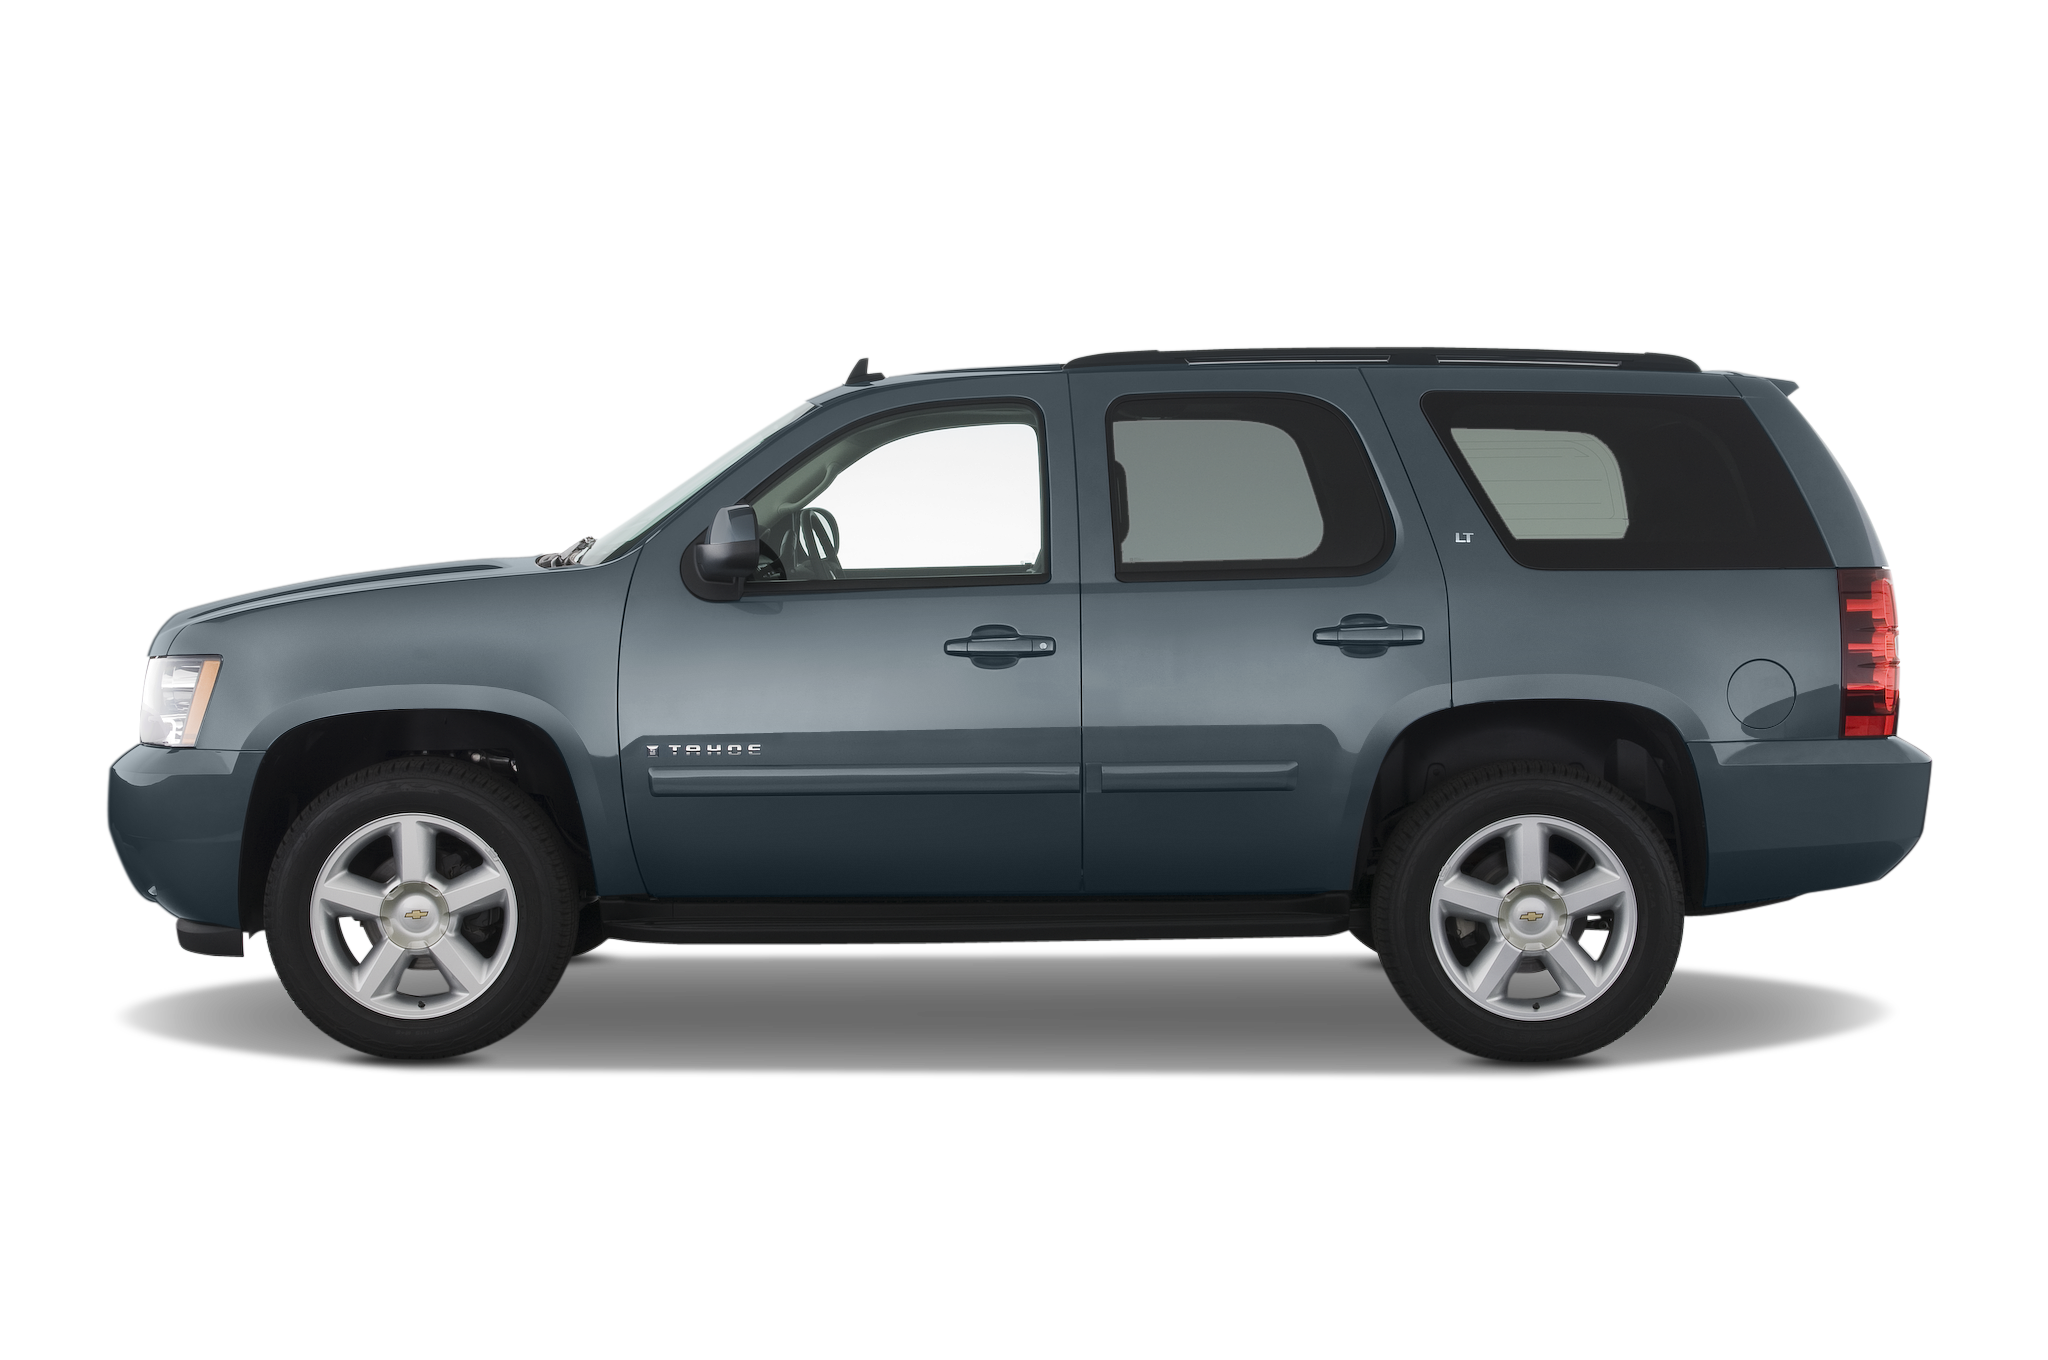 prices door overview and chevrolet connection view tahoe ltz angular photos review car l front the exterior specs ratings chevy